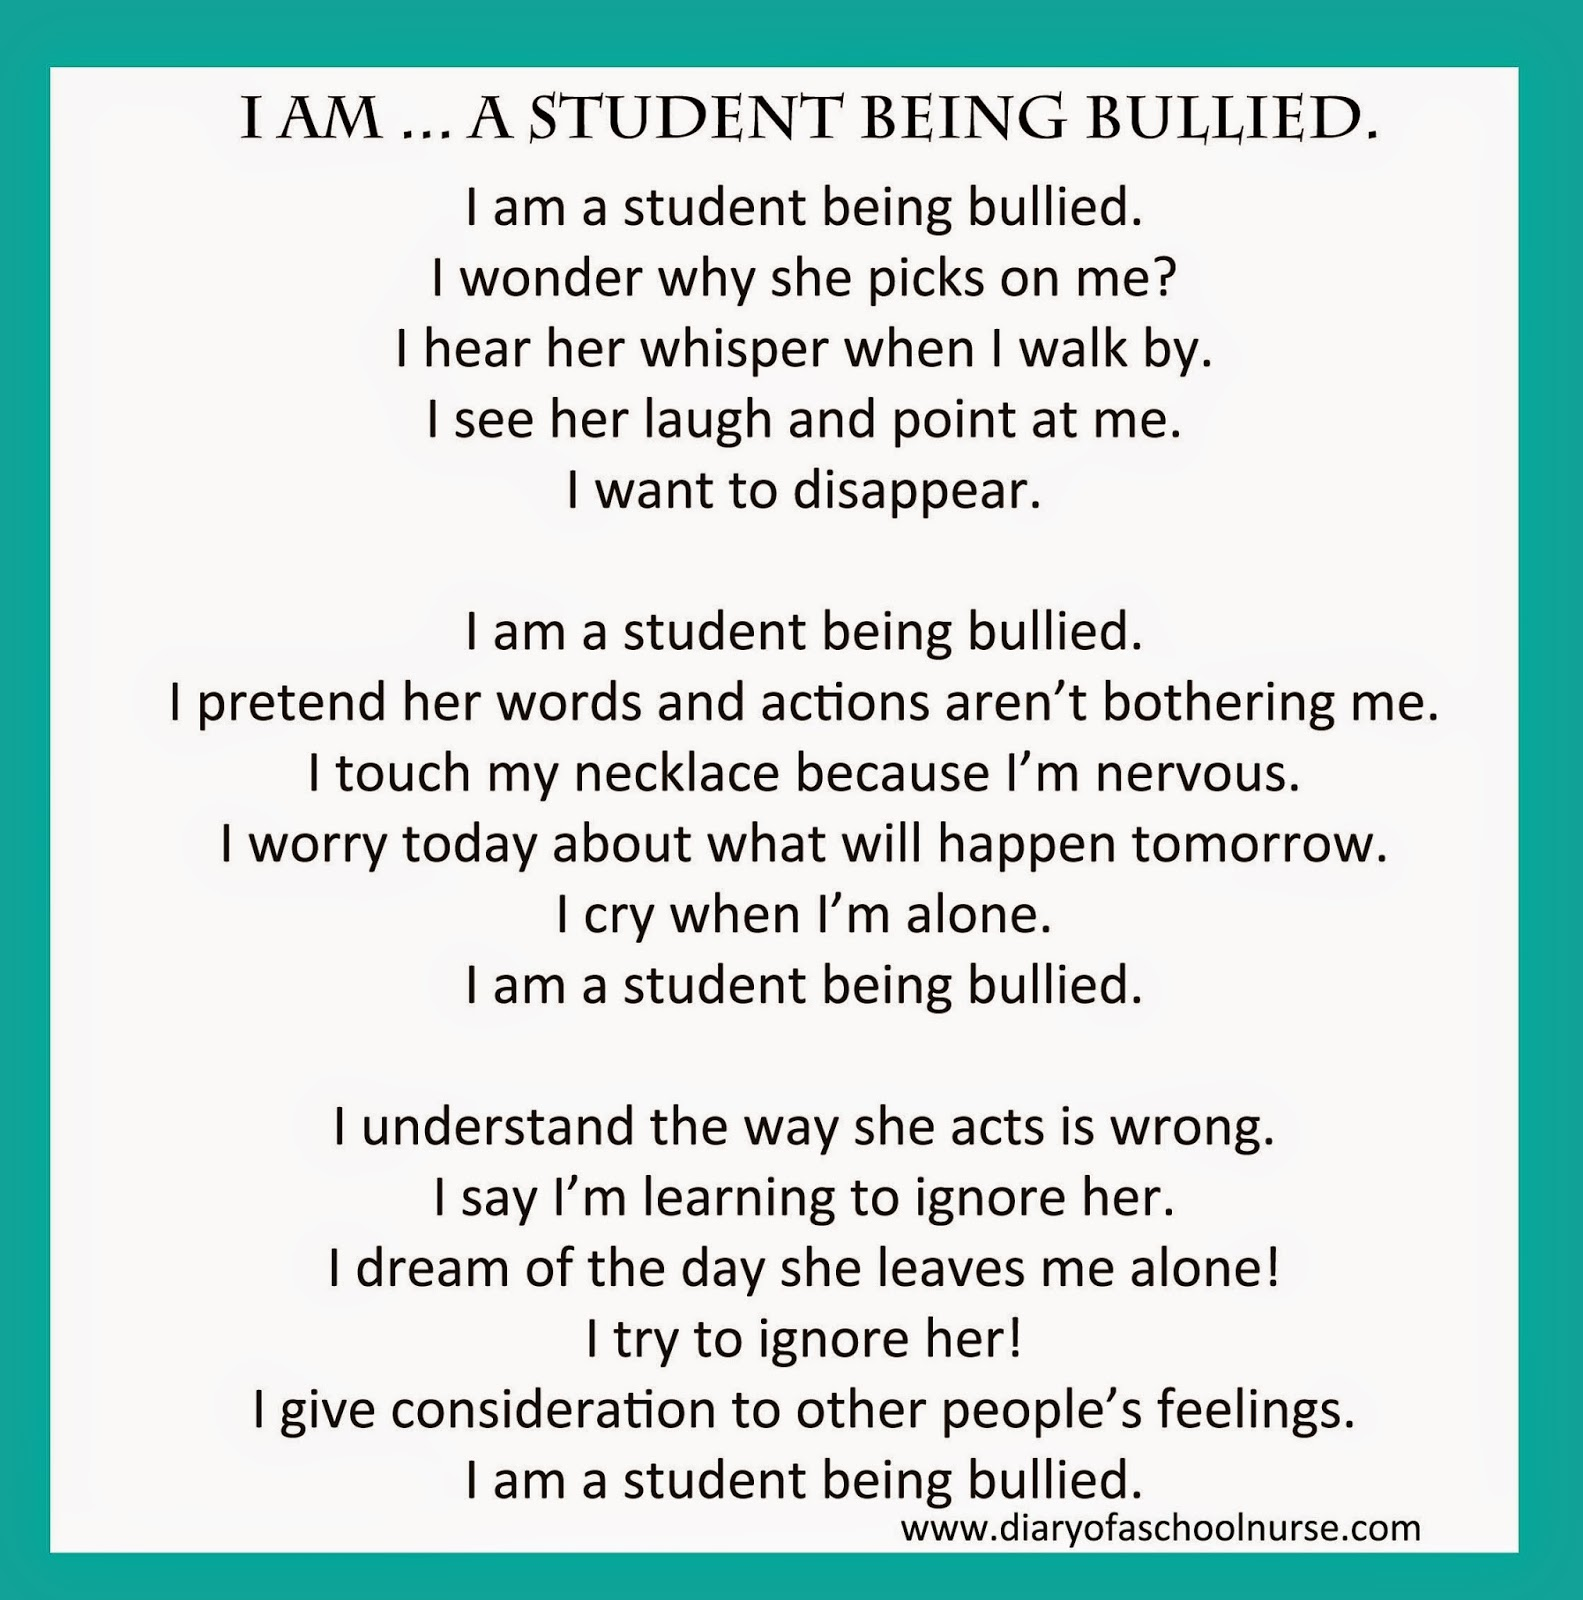 Bullying is a form of school violence